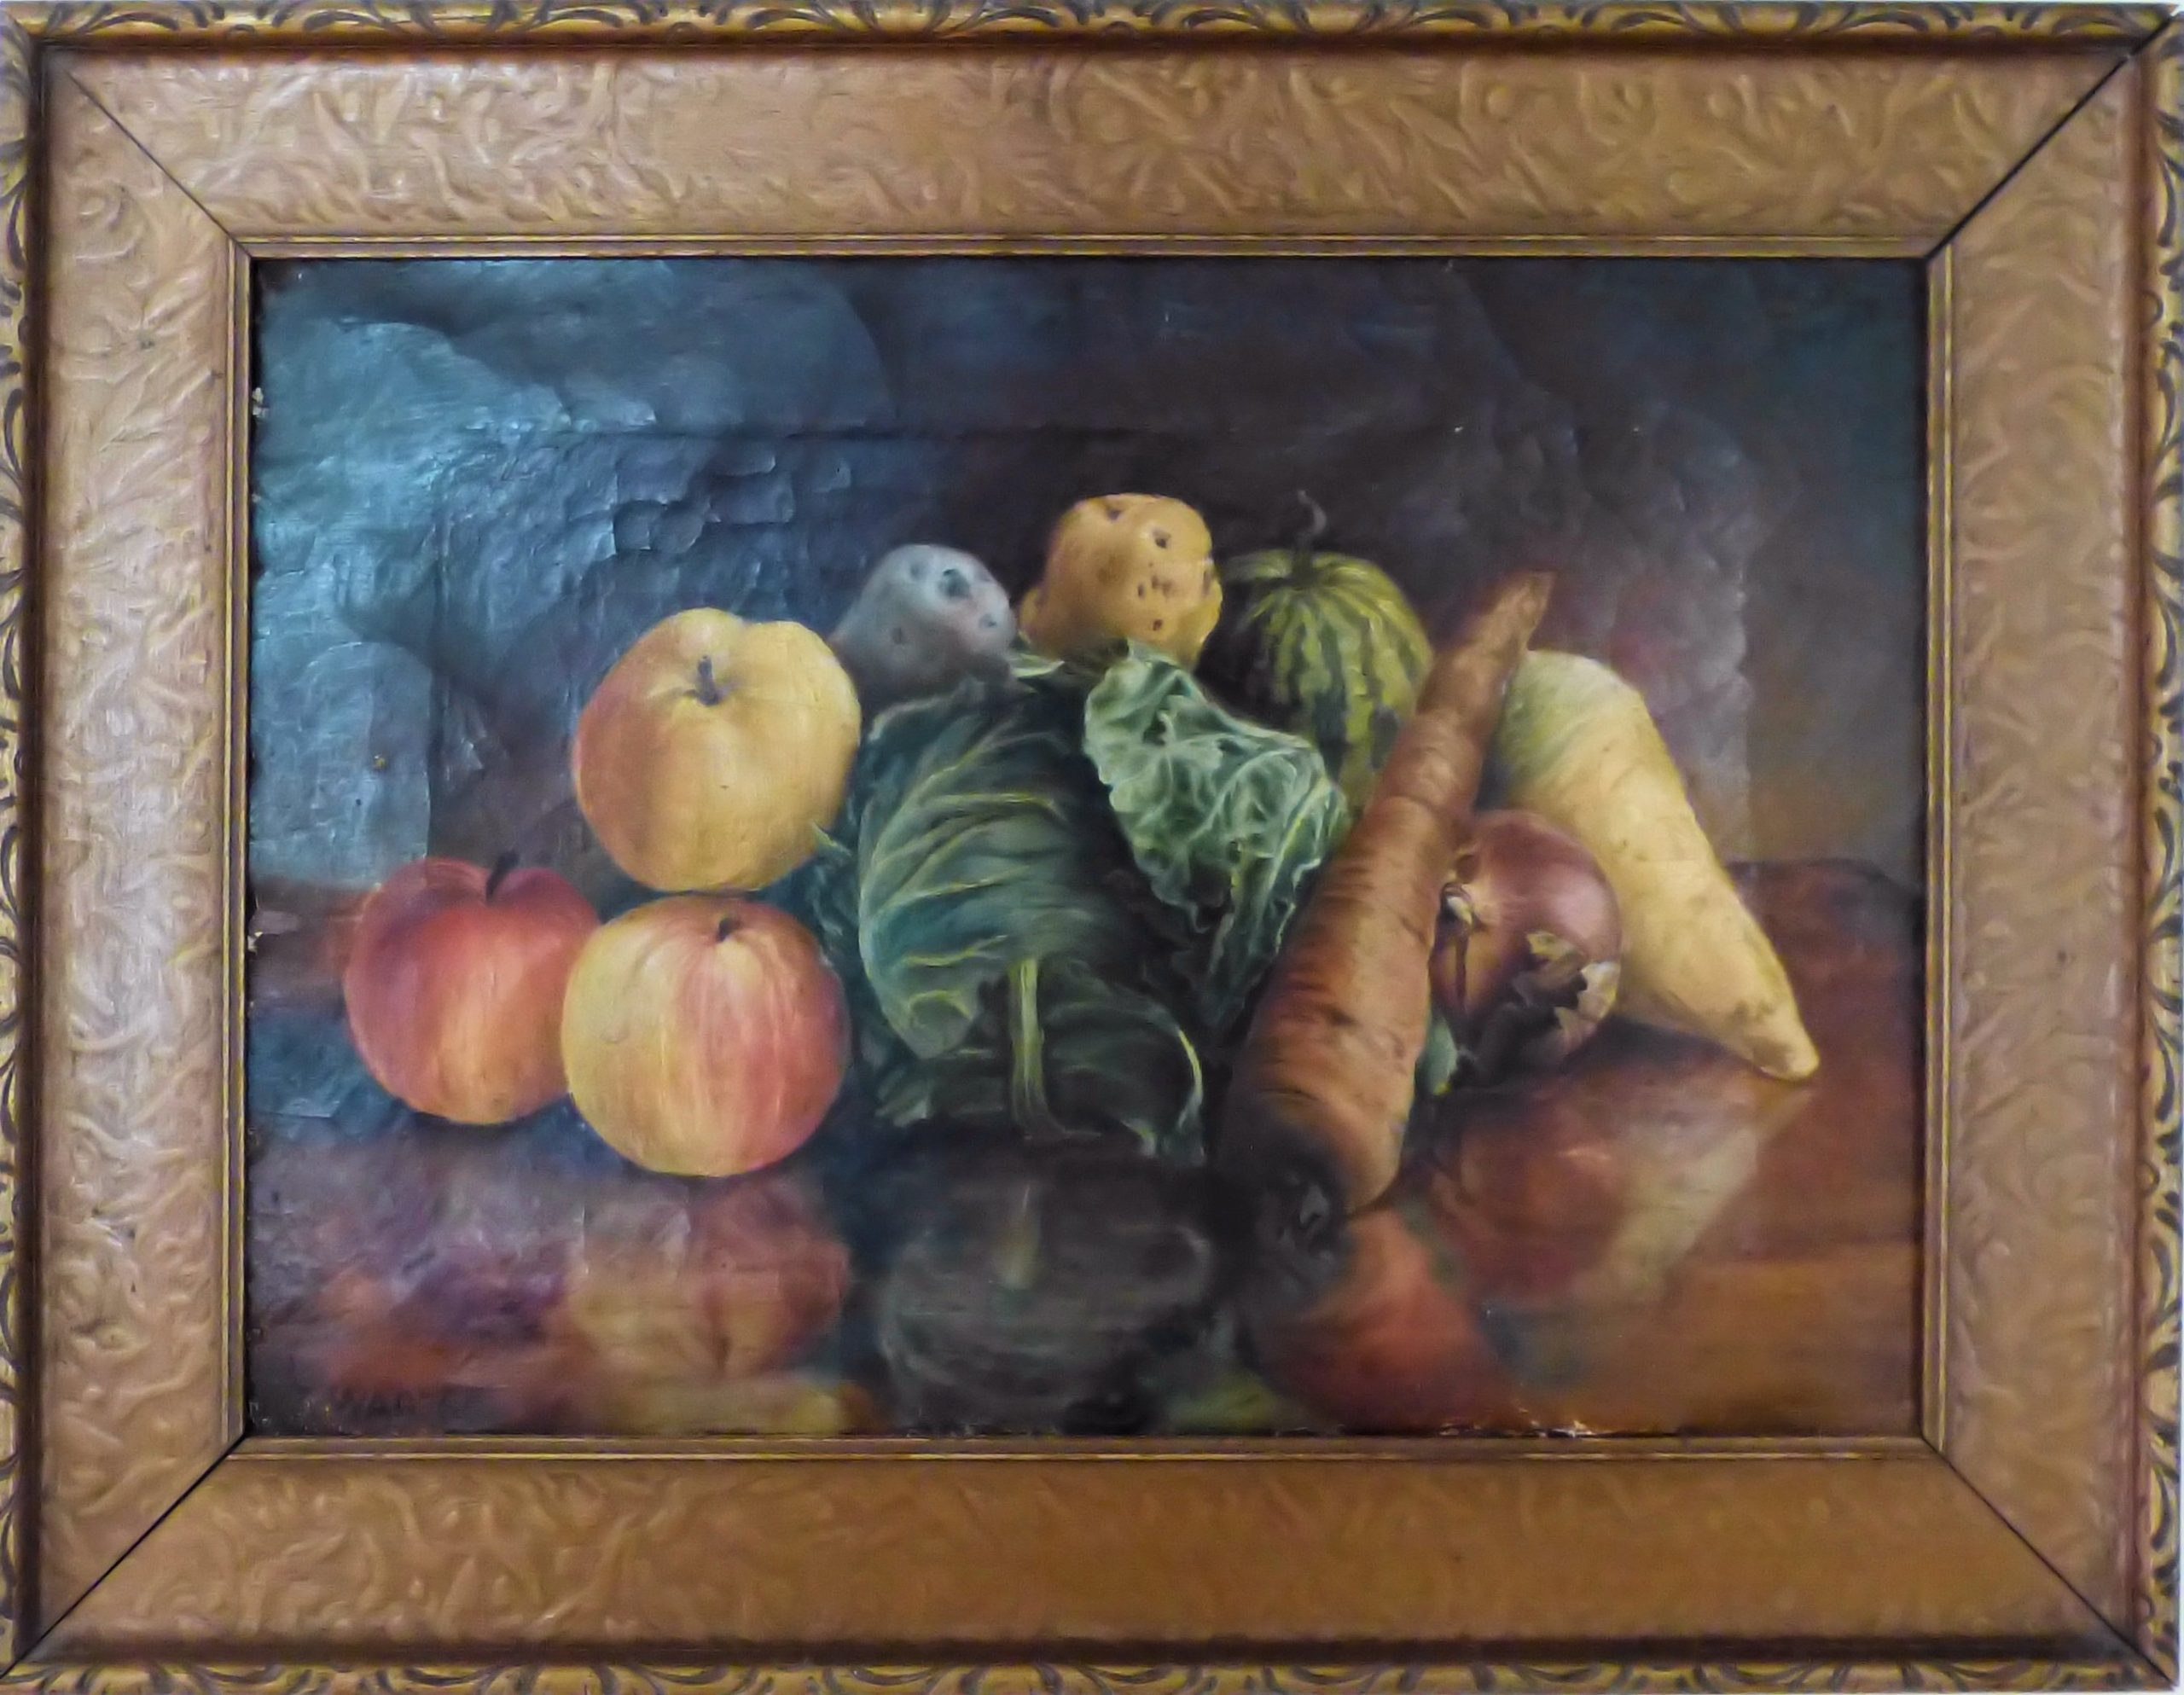 Arrangement of fruits and vegetables, reflected in surface of table